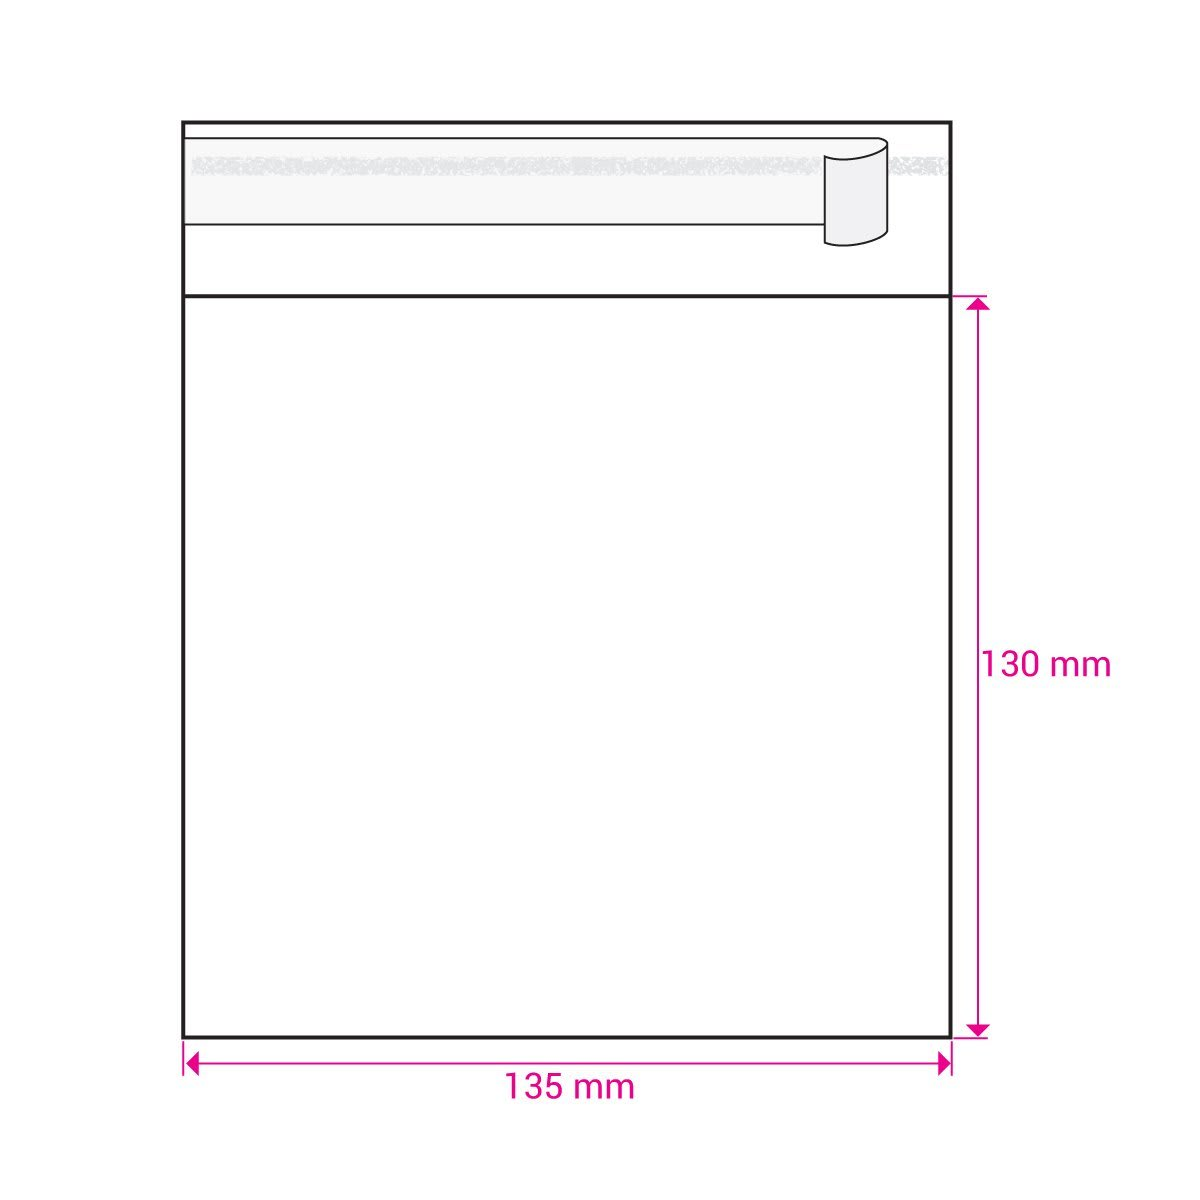 CLEAR CELLO BAGS to fit: 130 mm Square (SELF ADHESIVE)